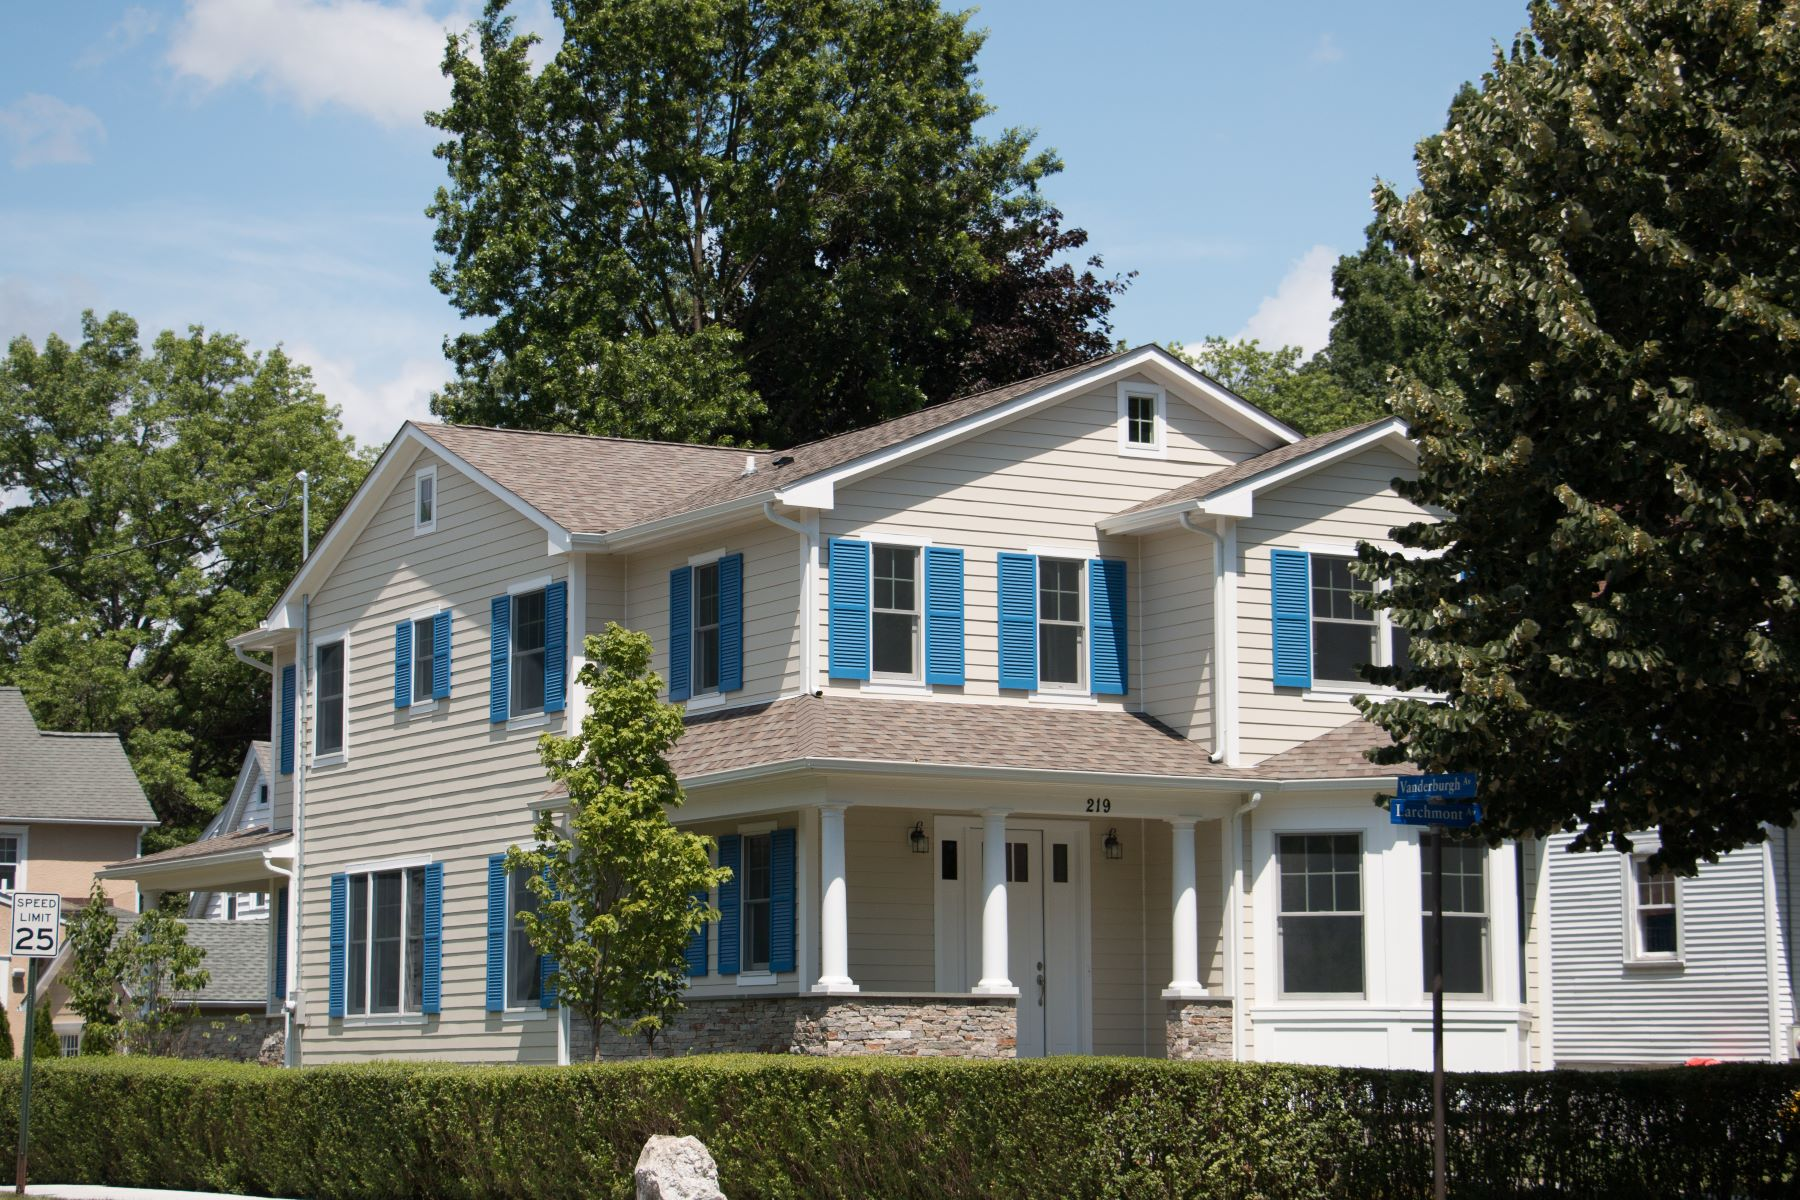 Single Family Homes for Active at 219 Larchmont Avenue Larchmont, New York 10538 United States